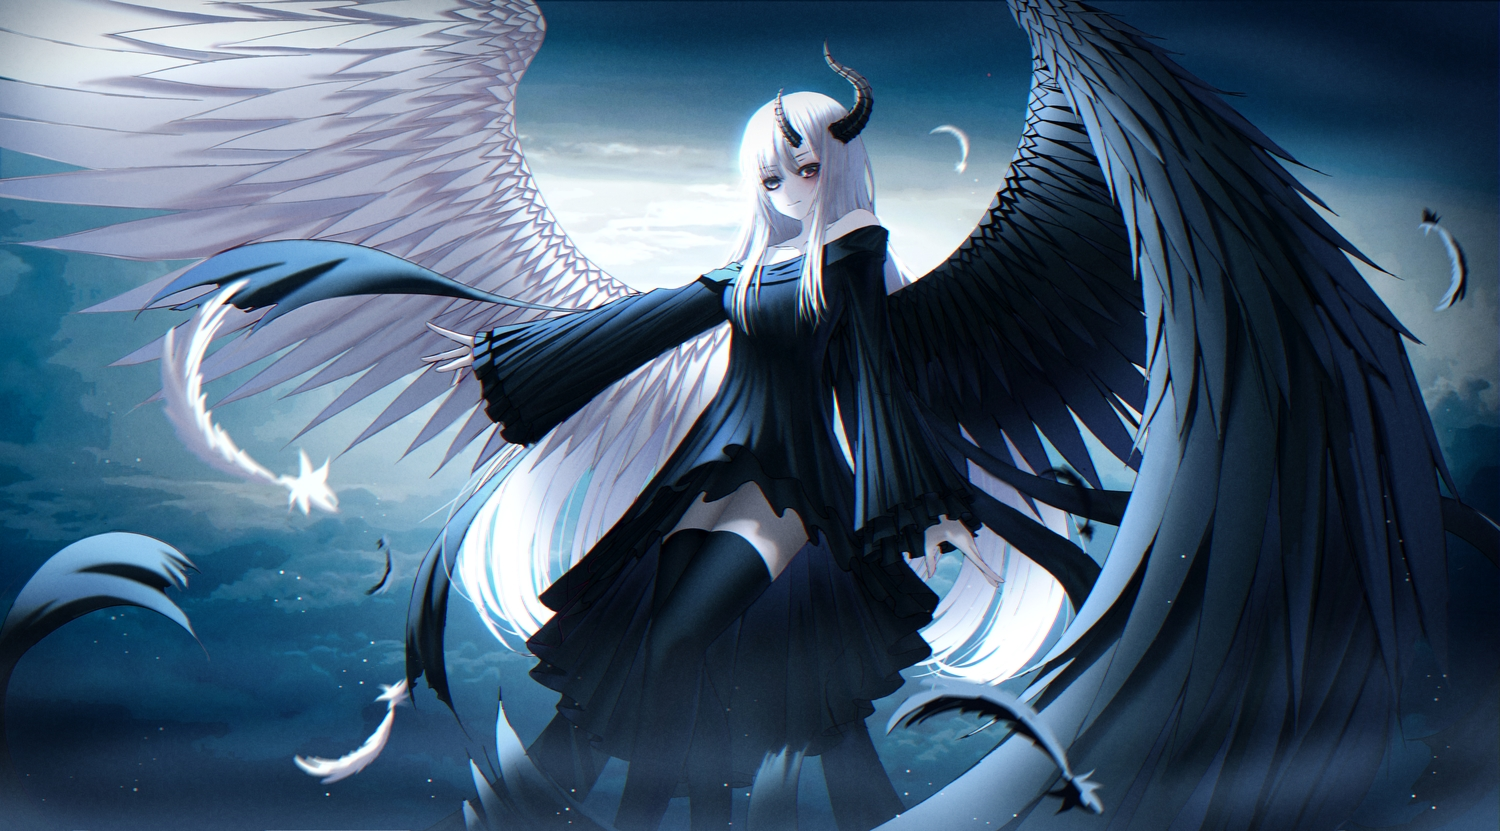 bicolored_eyes feathers gothic horns kmj8645885 long_hair original white_hair wings zettai_ryouiki